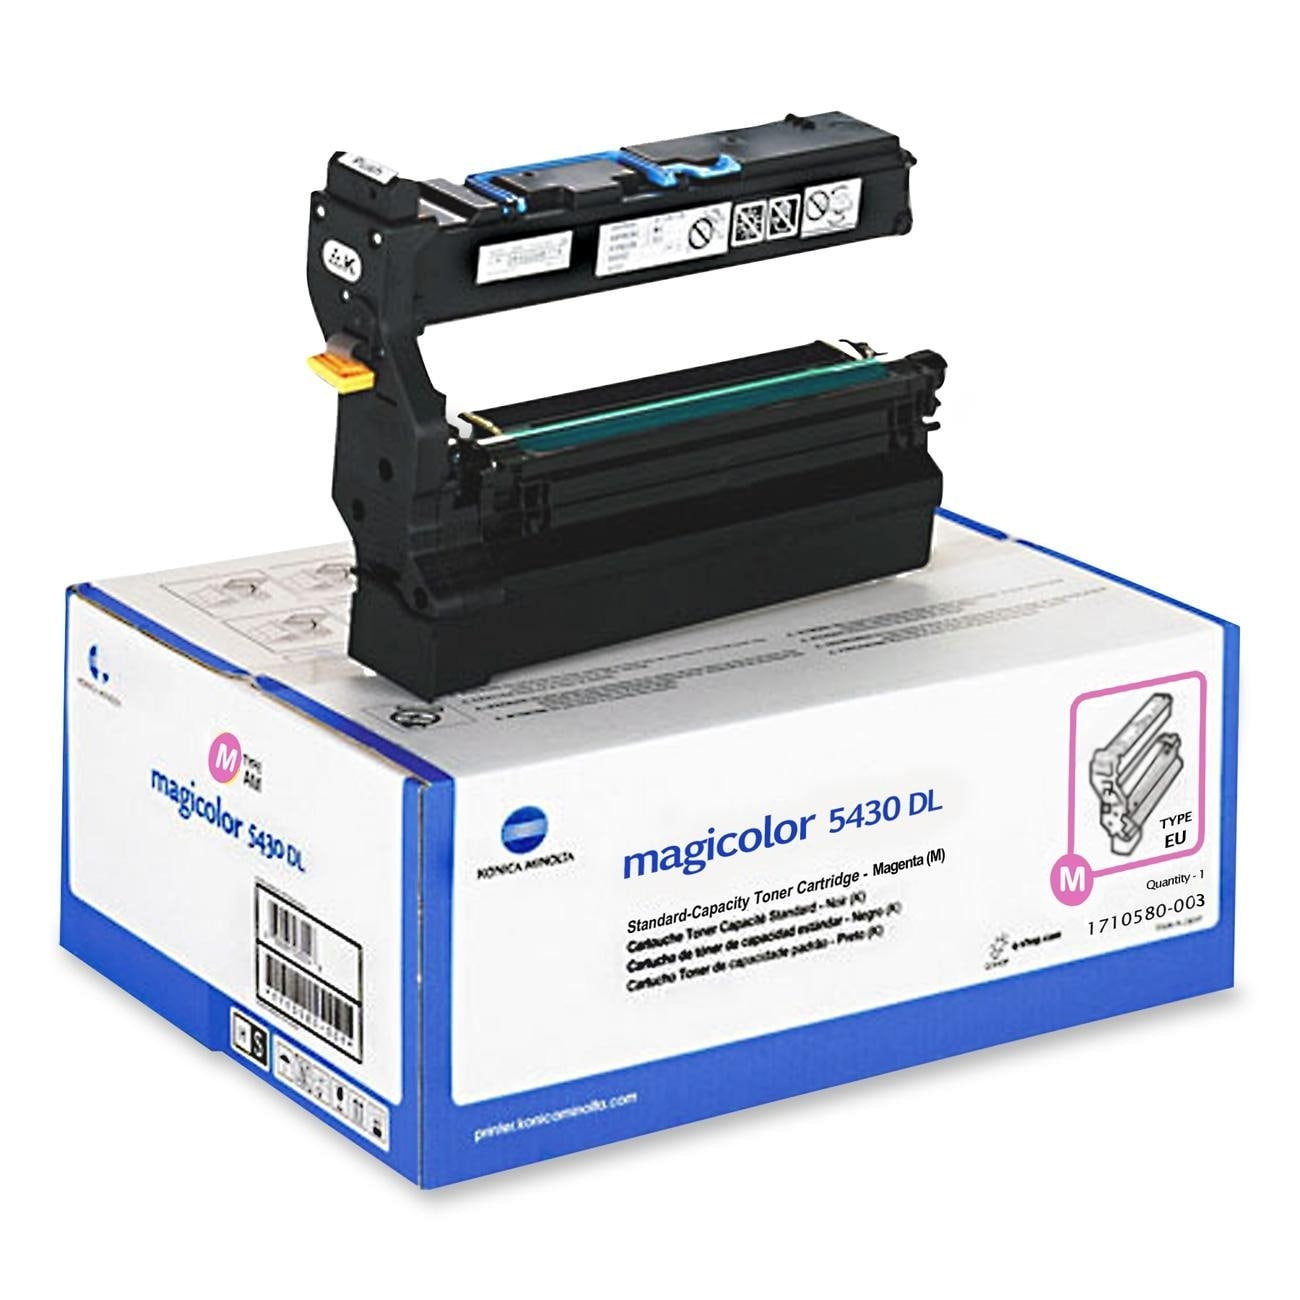 Konica Minolta Magenta Toner for magicolor 5430 DL